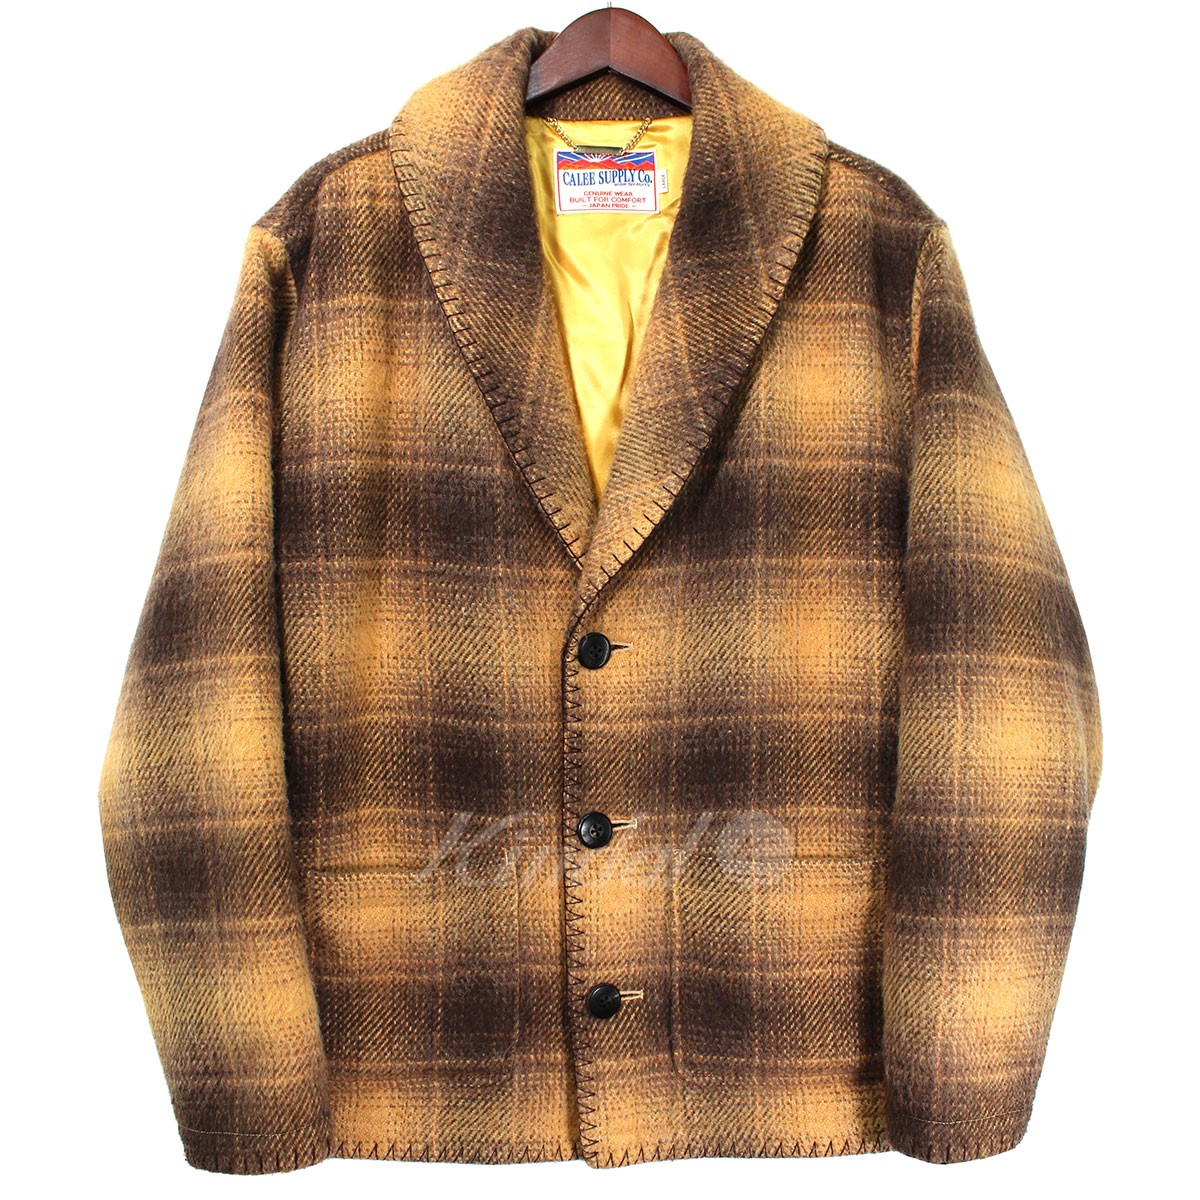 【中古】CALEE 2016AW SHAGGY WOOL CHECK SHAWL JACKET 【送料無料】 【000906】 【KIND1550】